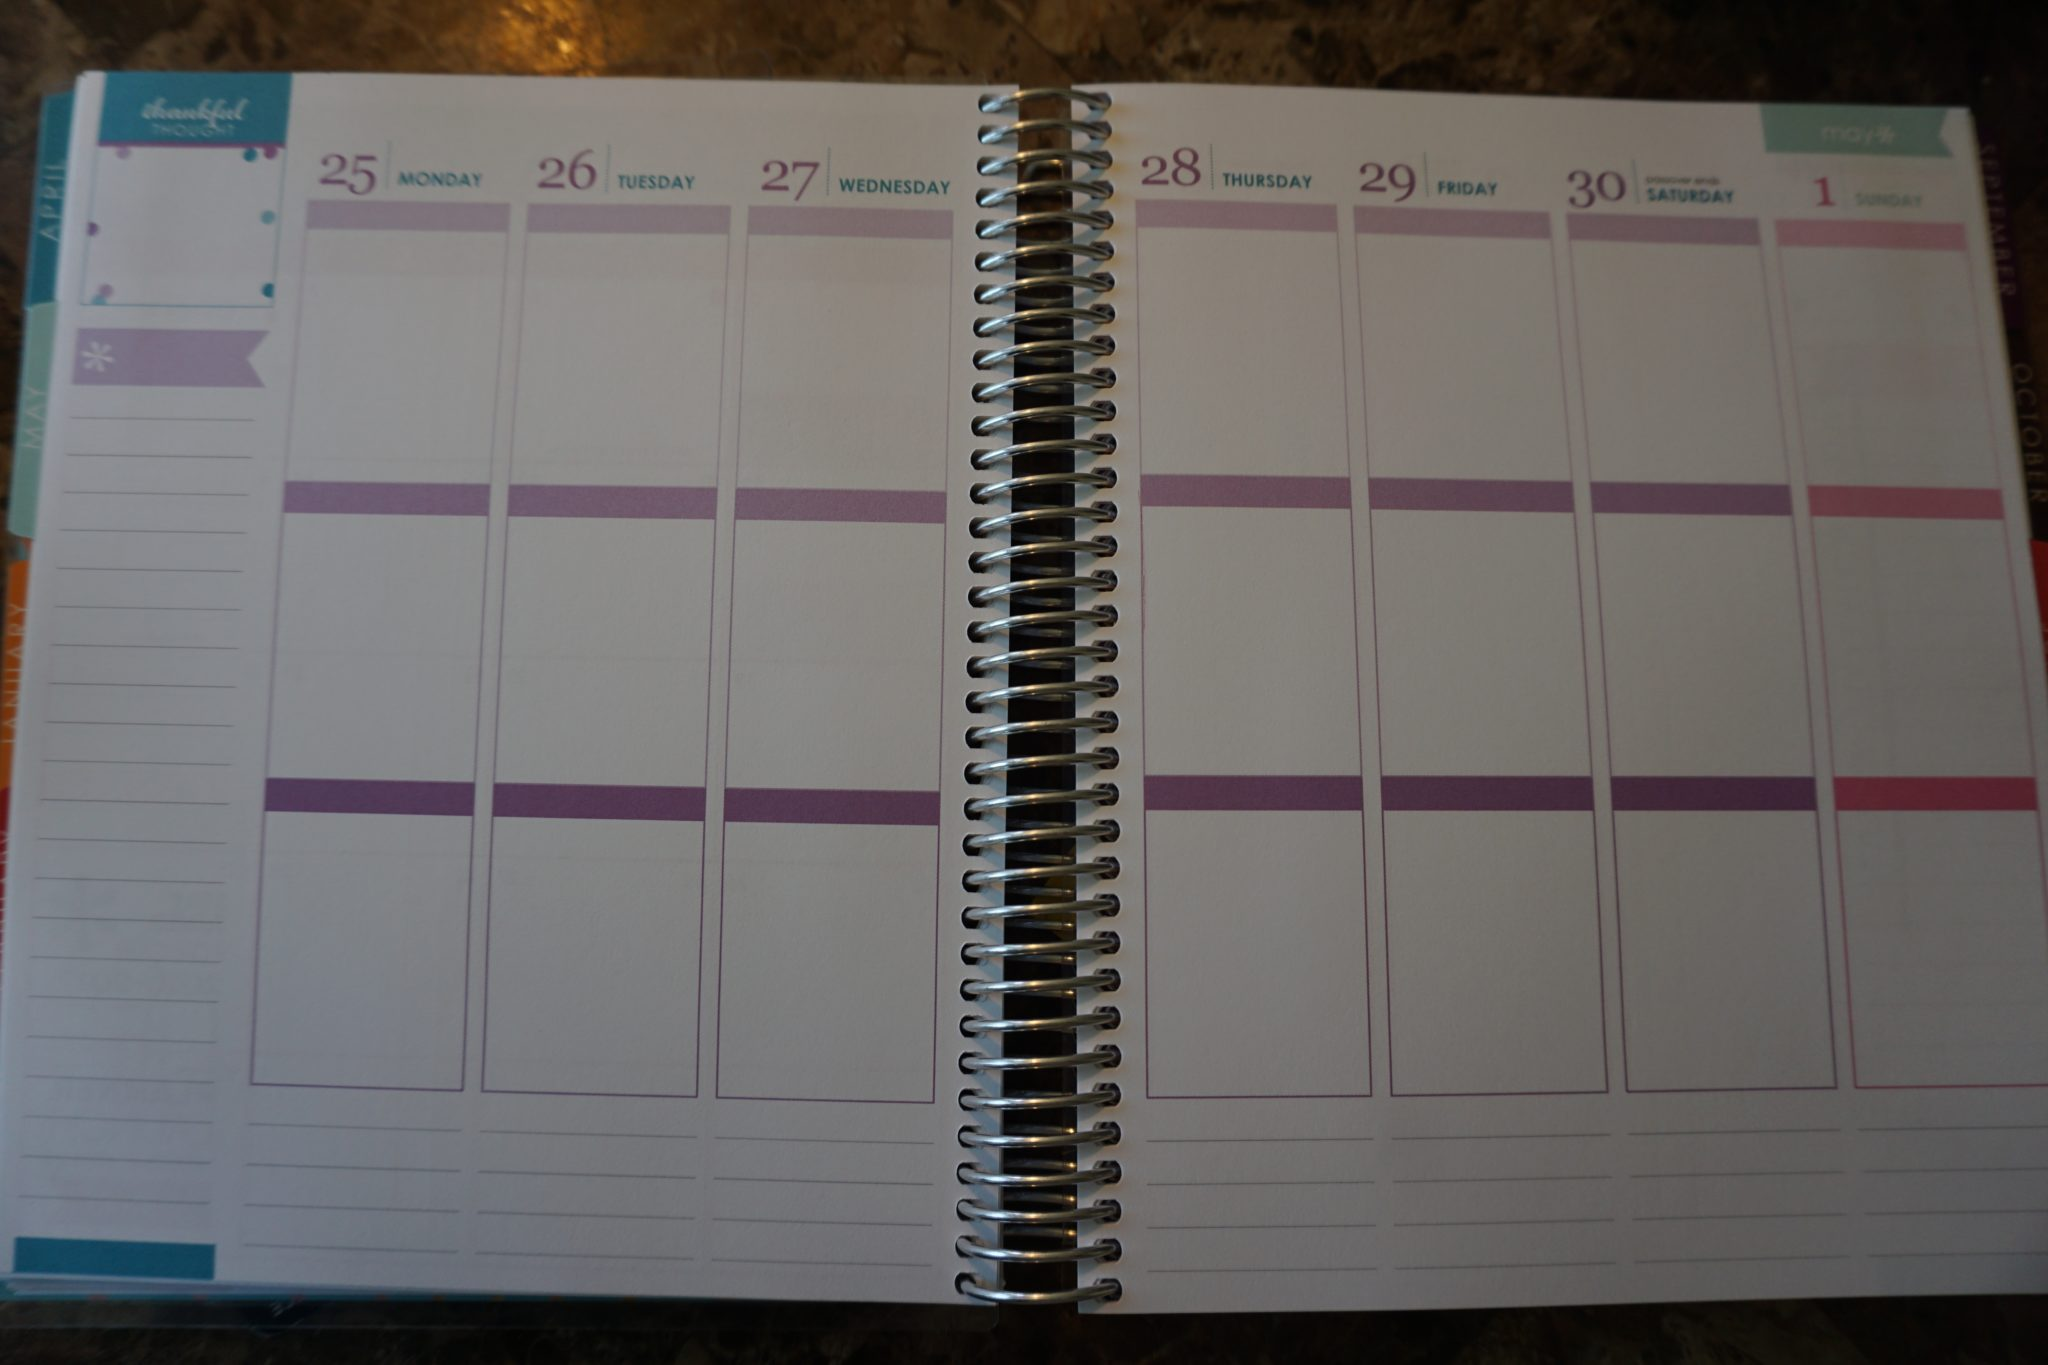 The Weekly View of the Erin Condren Life Planner. I use this to combine my meal planning, daily home tasks, blogging tasks and errands.